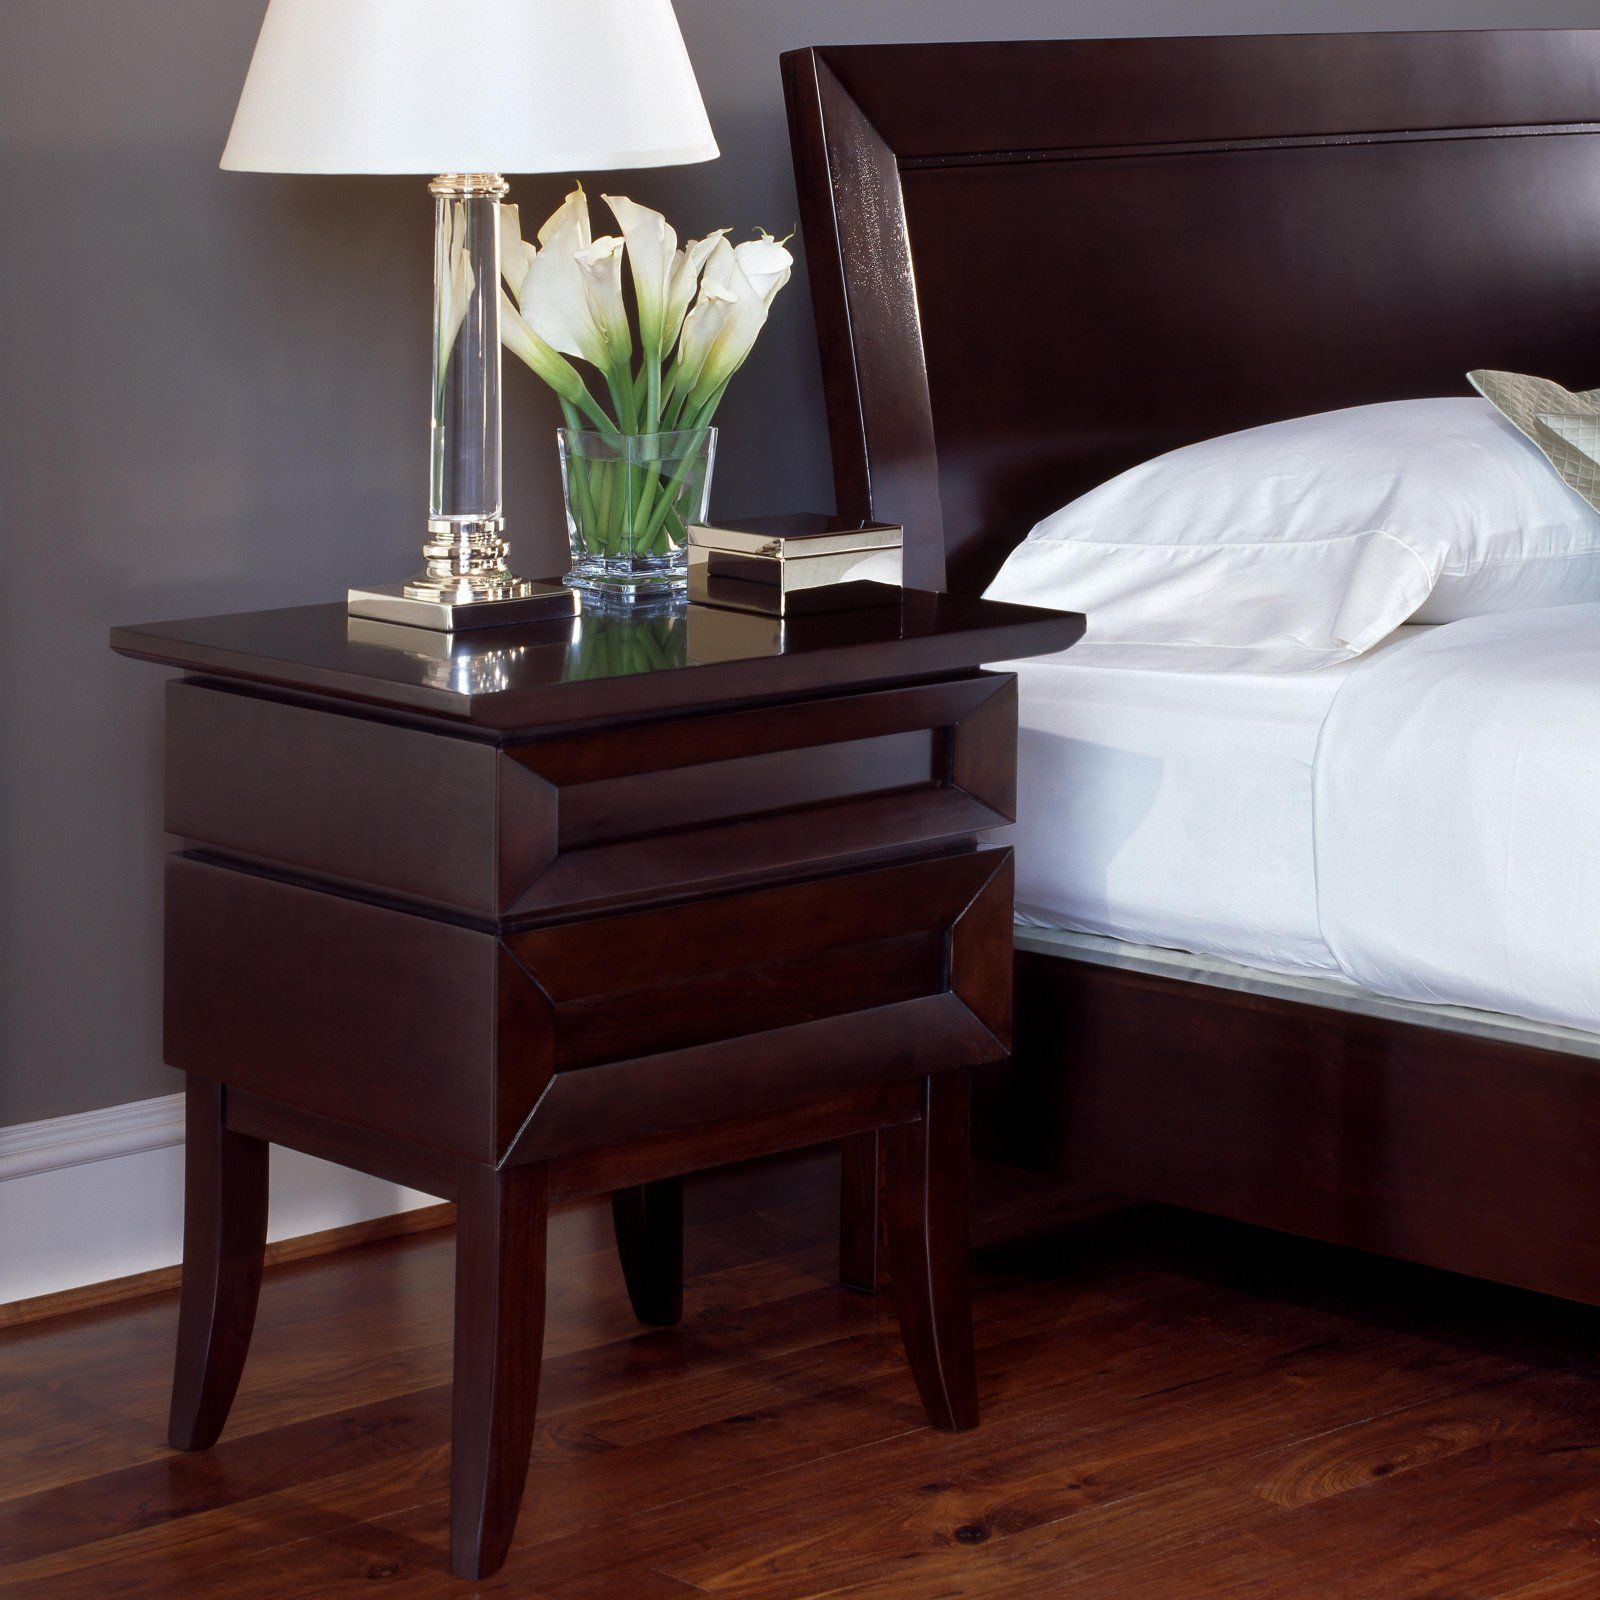 paint colors for cherry wood furniture Uniqueness of